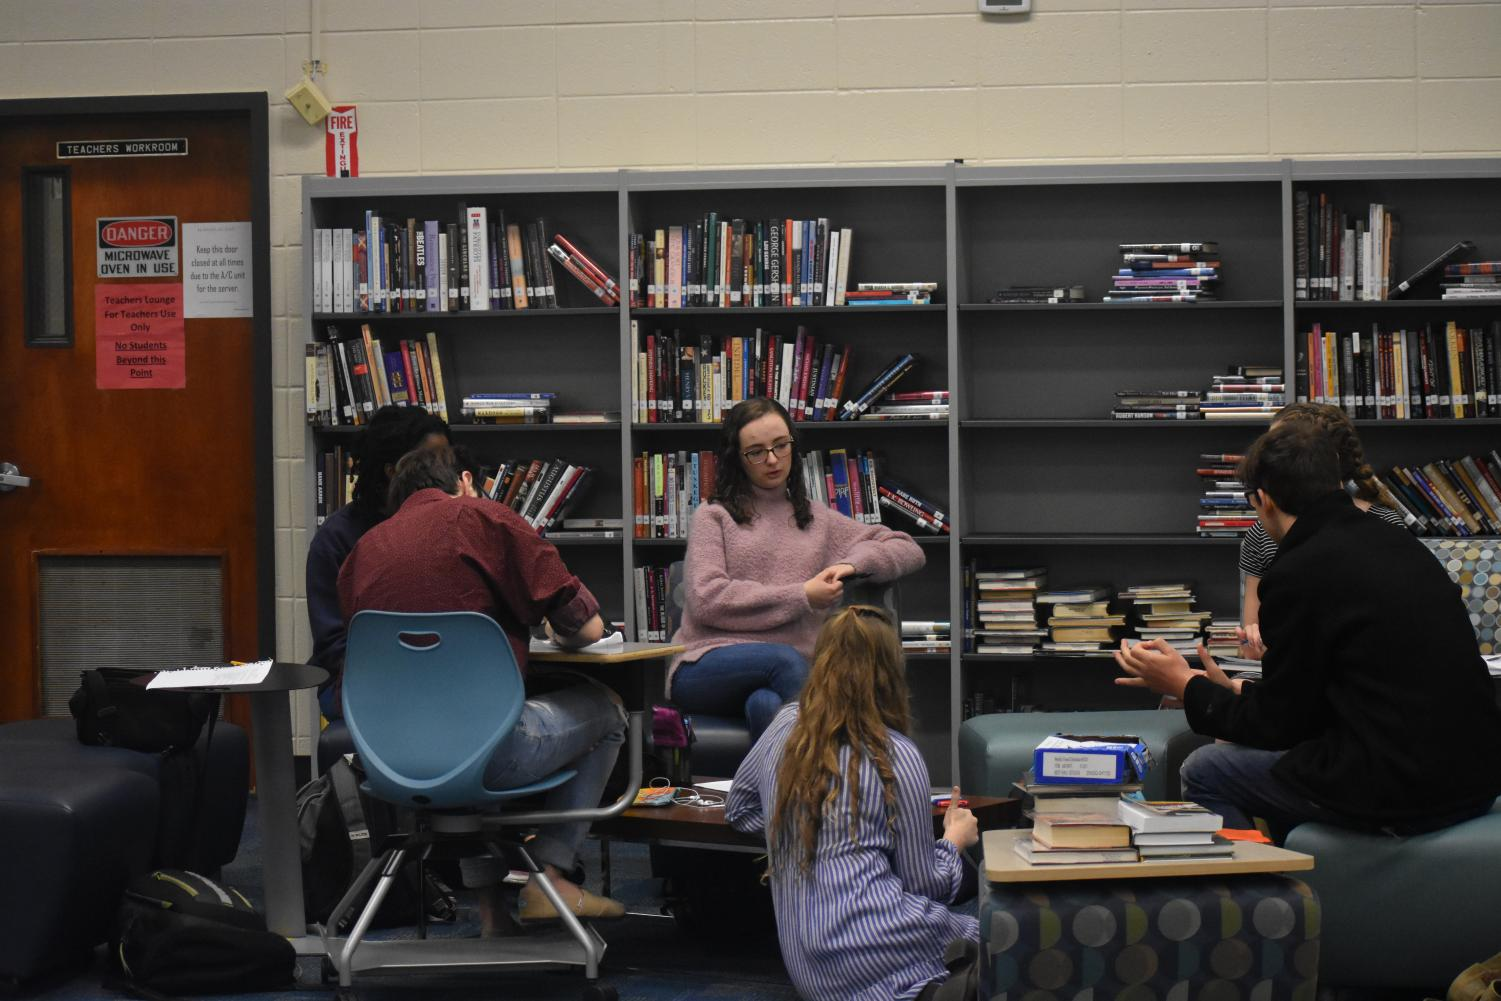 The Model United Nations team spends their Wednesday morning in the library, perfecting their argumentative and diplomatic craft.